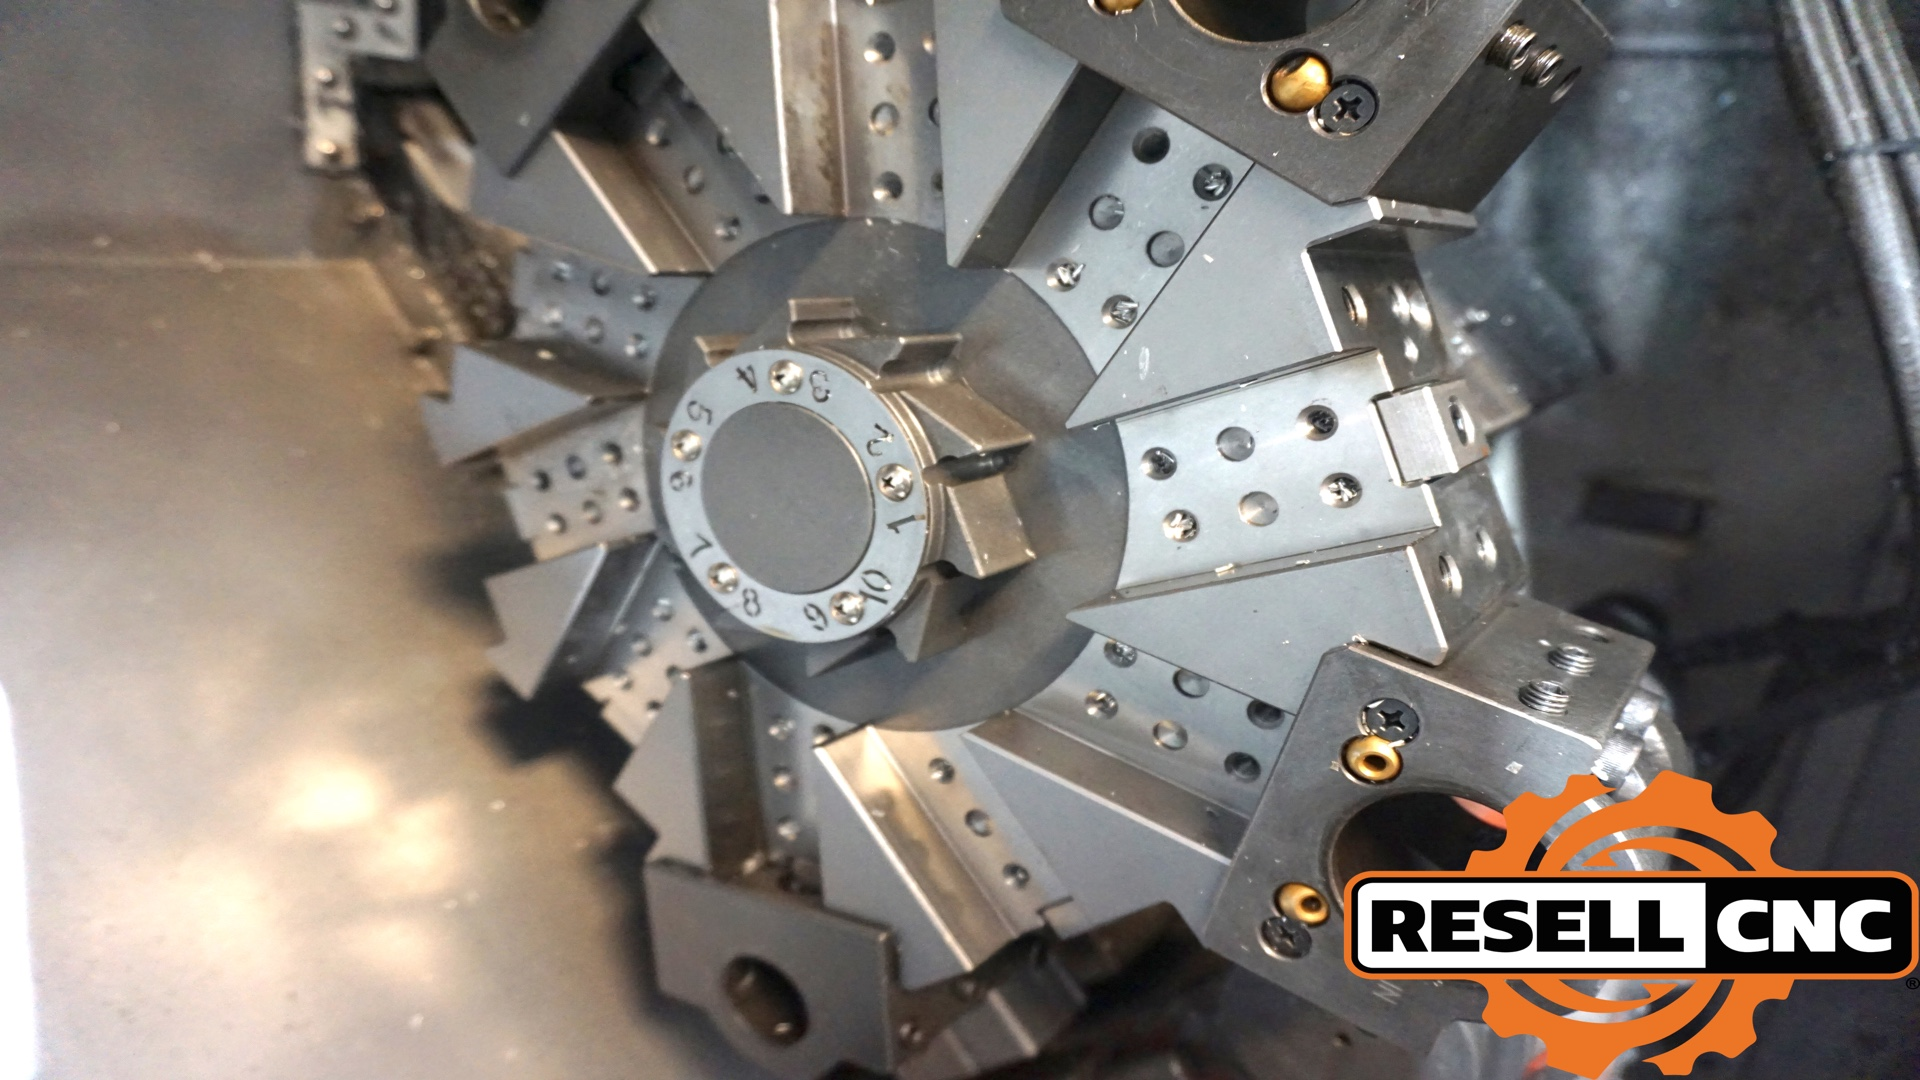 Samsung SL-15 CNC Lathes   Used CNC - Resell CNC on